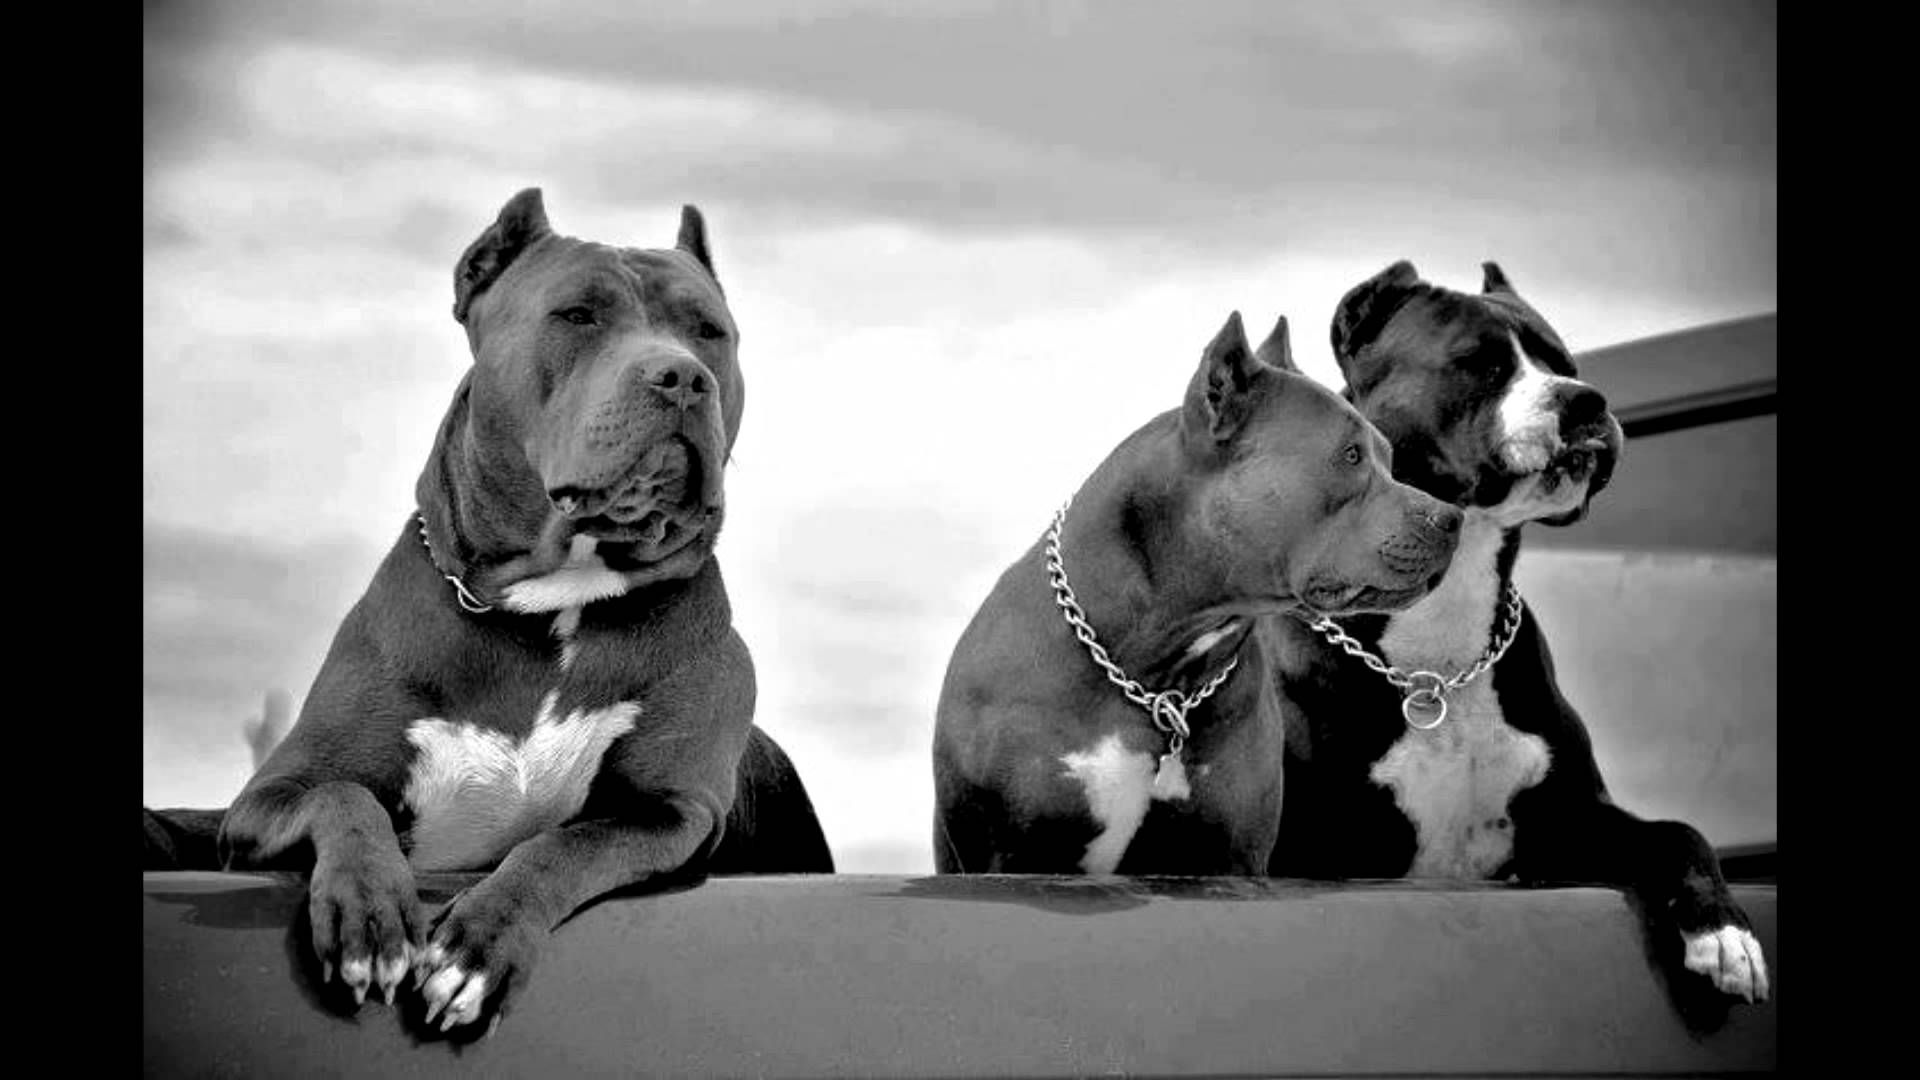 pit bull wallpaper  Puppy Pitbull Wallpaper Android Apps on Google Play ×   HD ...